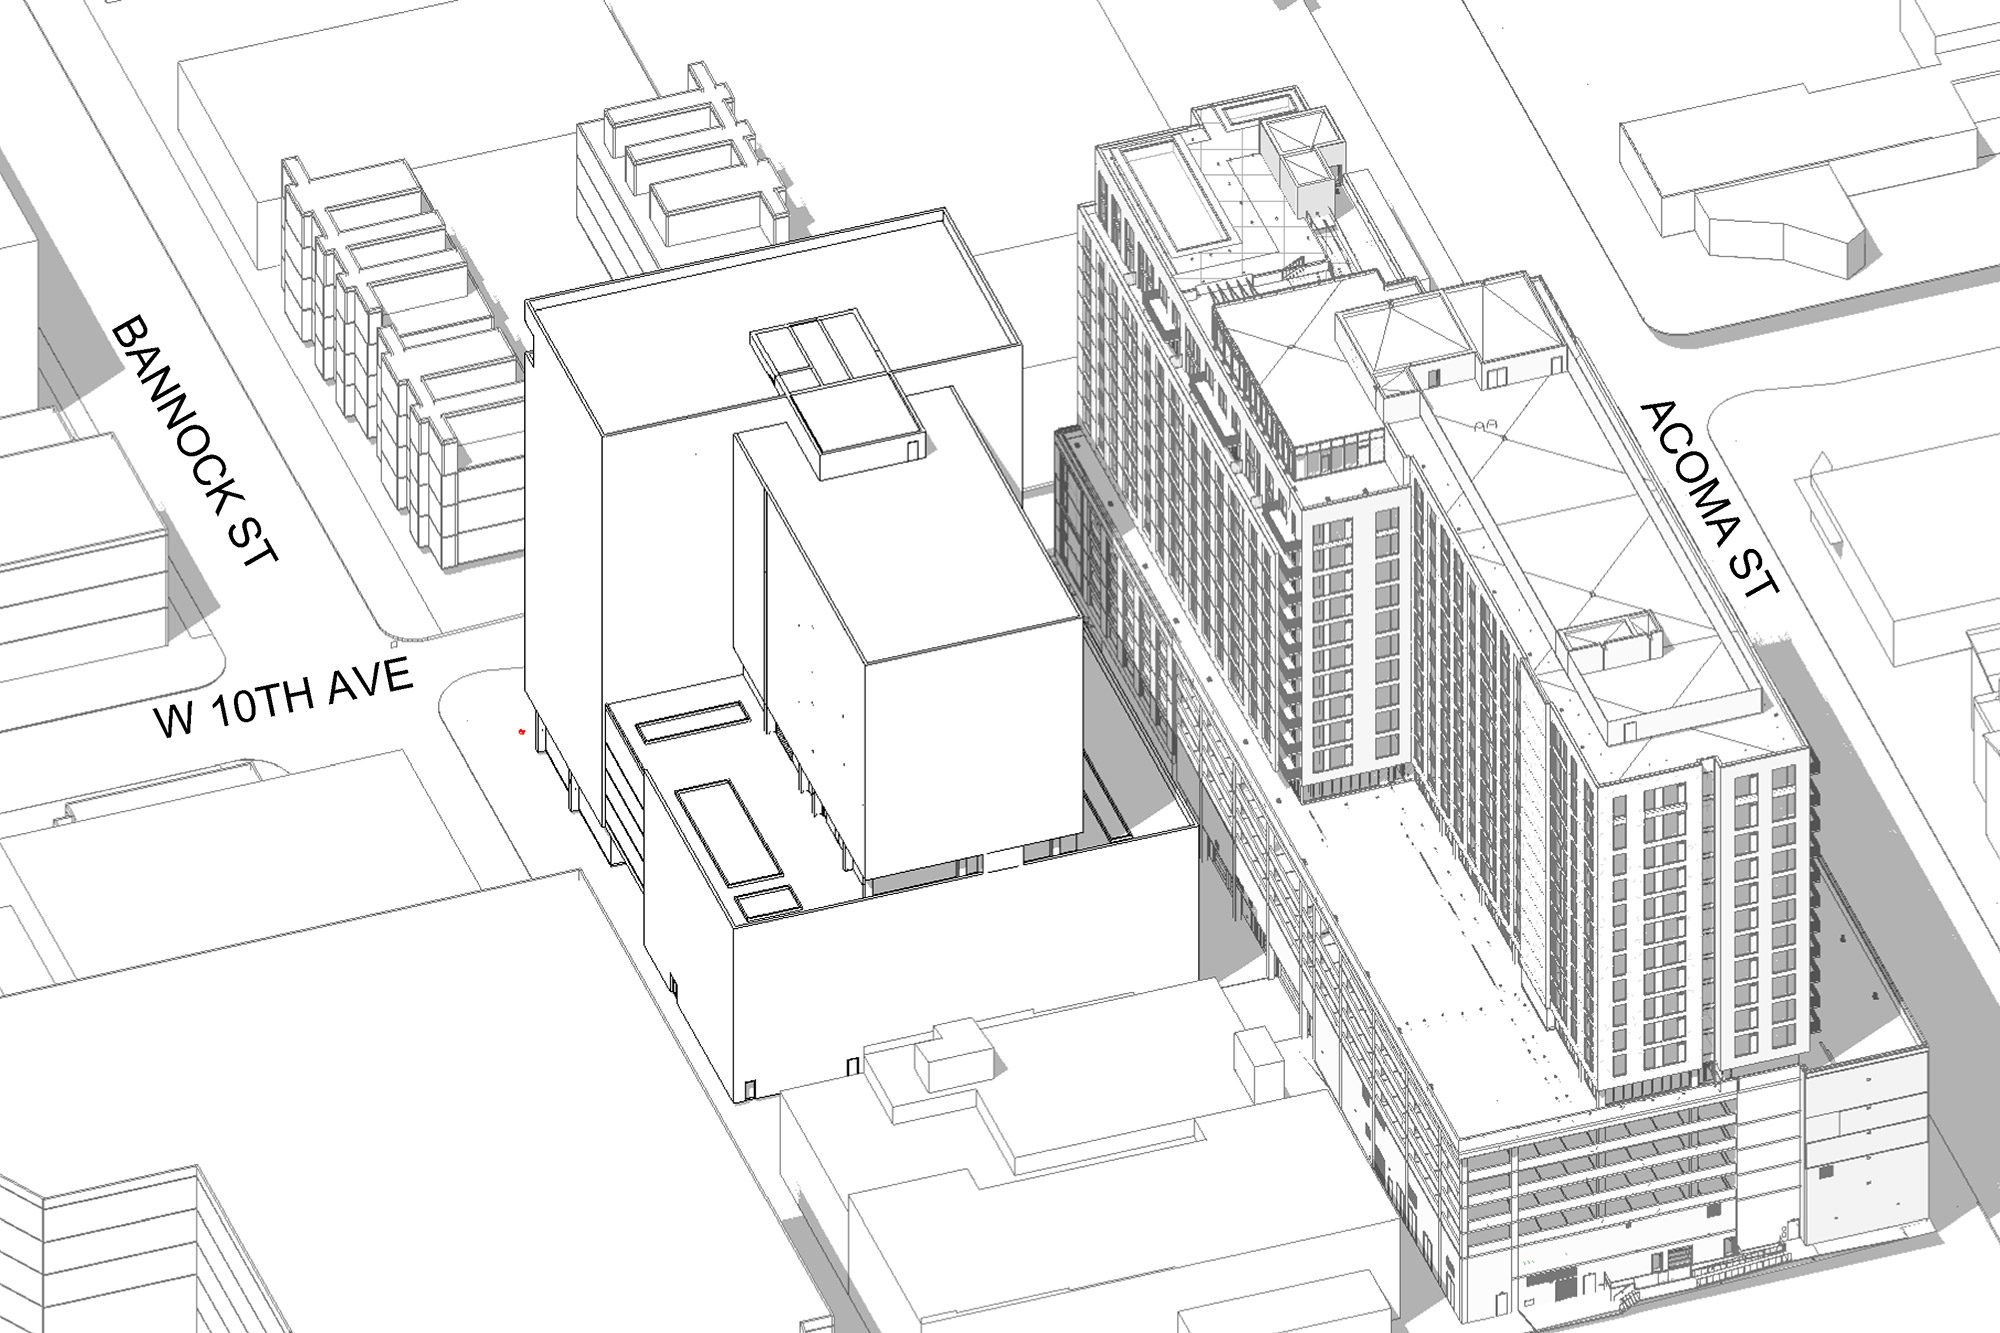 Plans For 990 Bannock Submitted To City Denverinfill Blog